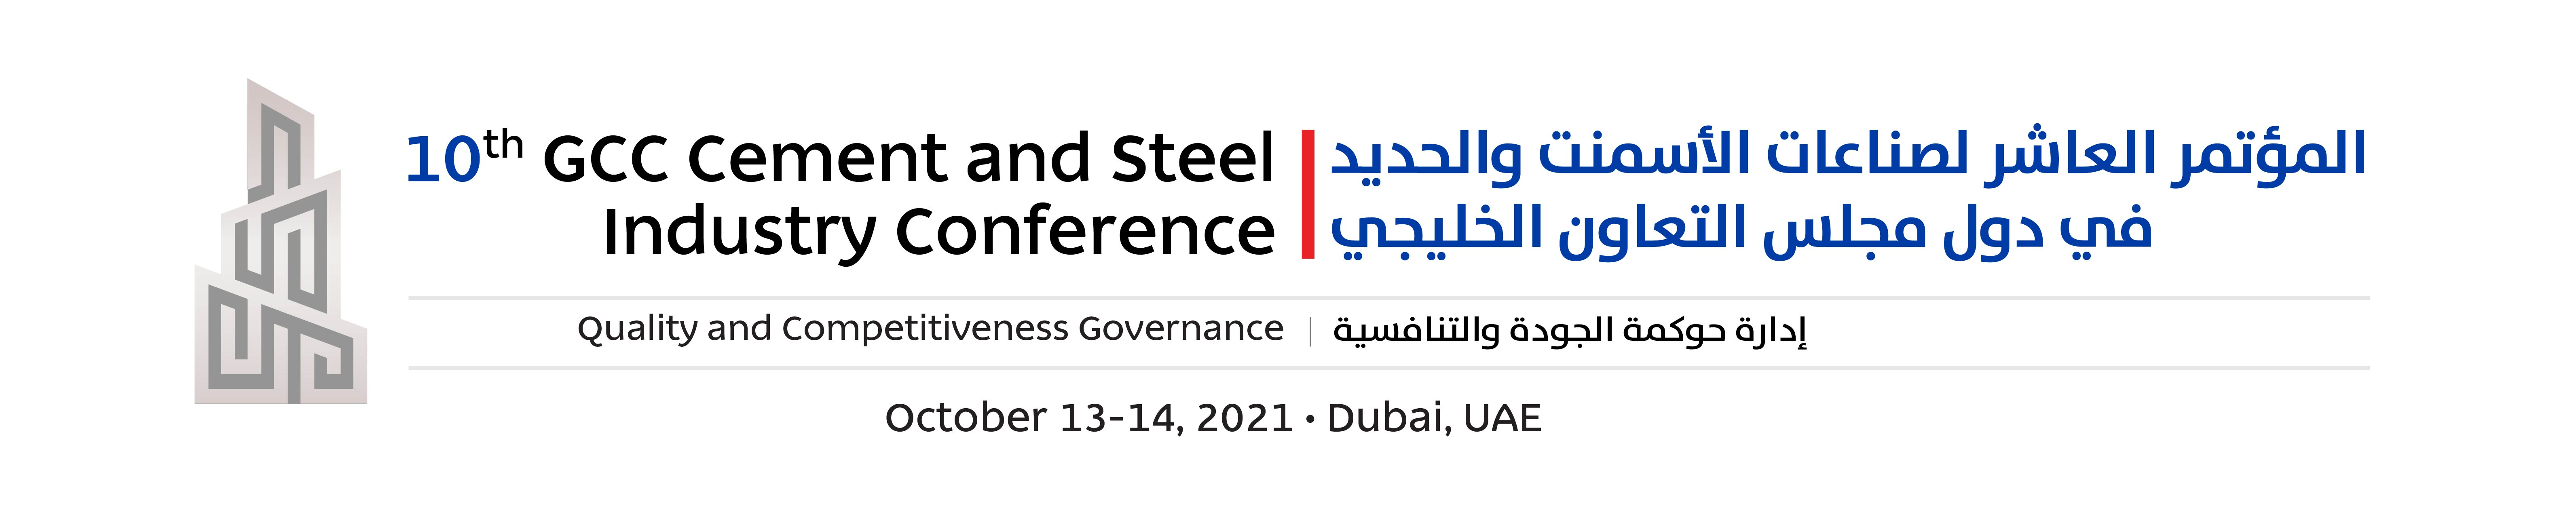 10th GCC Cement and Steel Industry Conference